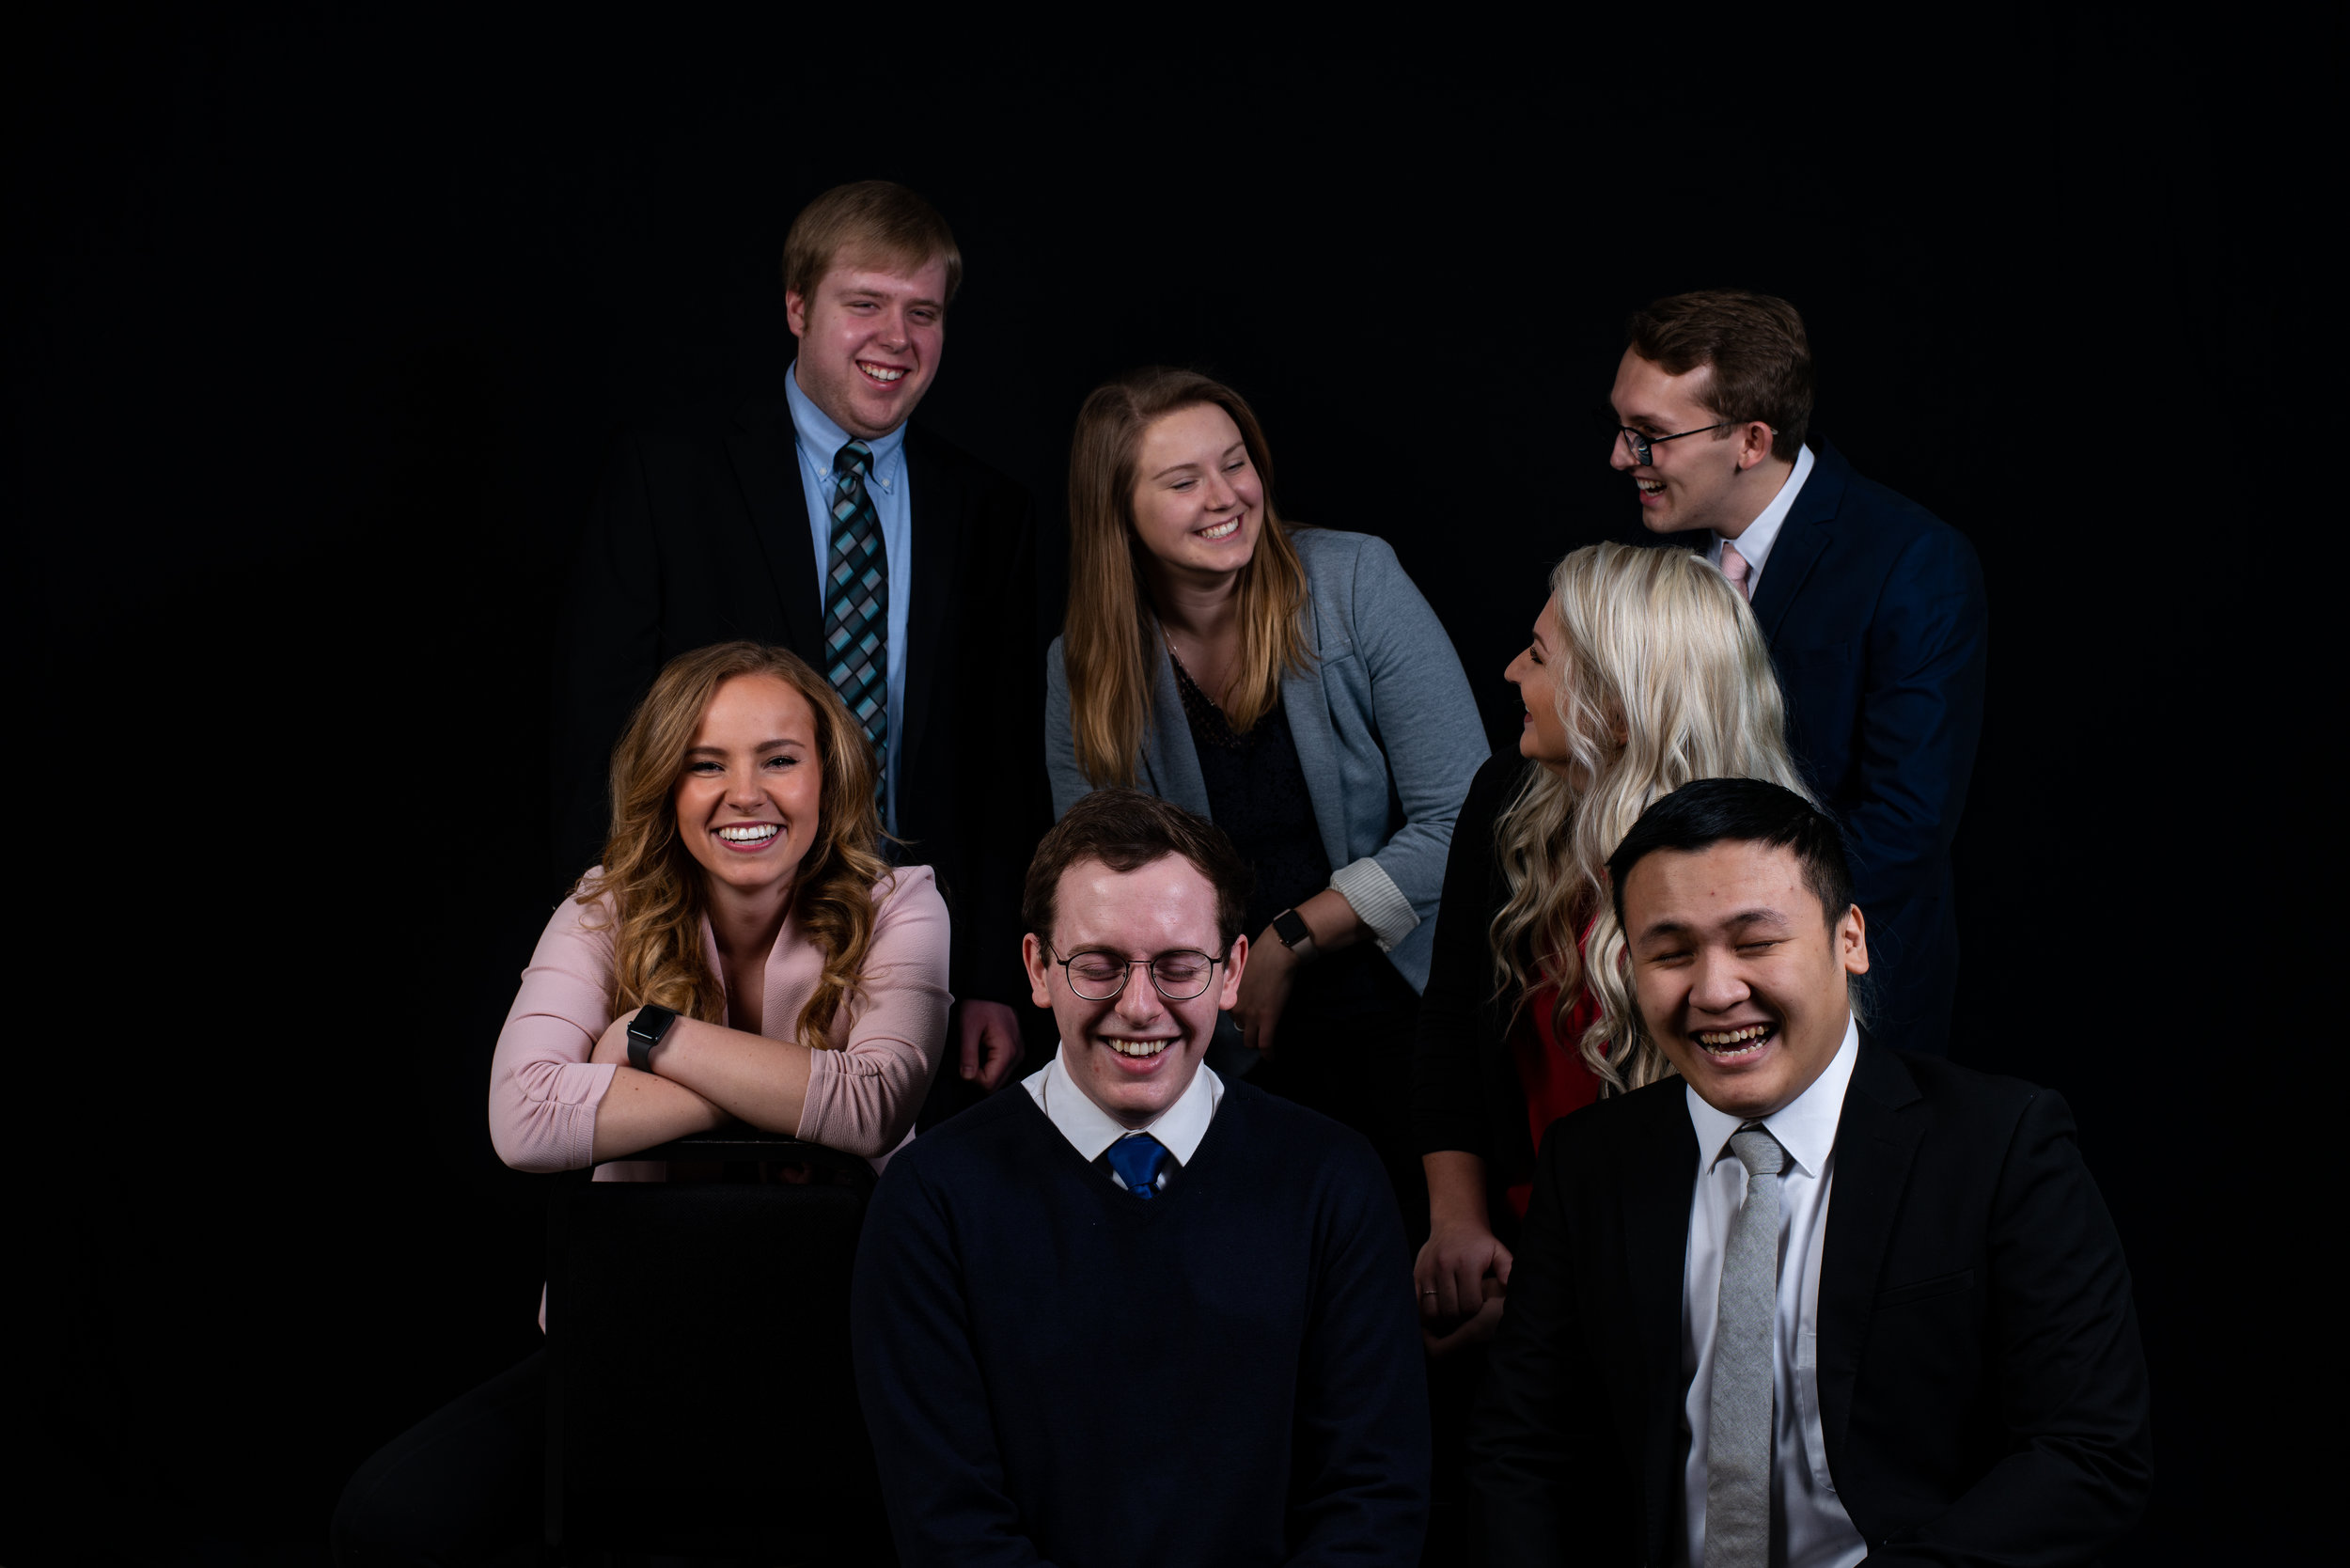 Back row (left to right): Jon Mohwinkle, Katie Kreis, Ian Coon Front row (left to right): Madison Bloker, Robby Newell, Kailee O'Brien, Tom Le